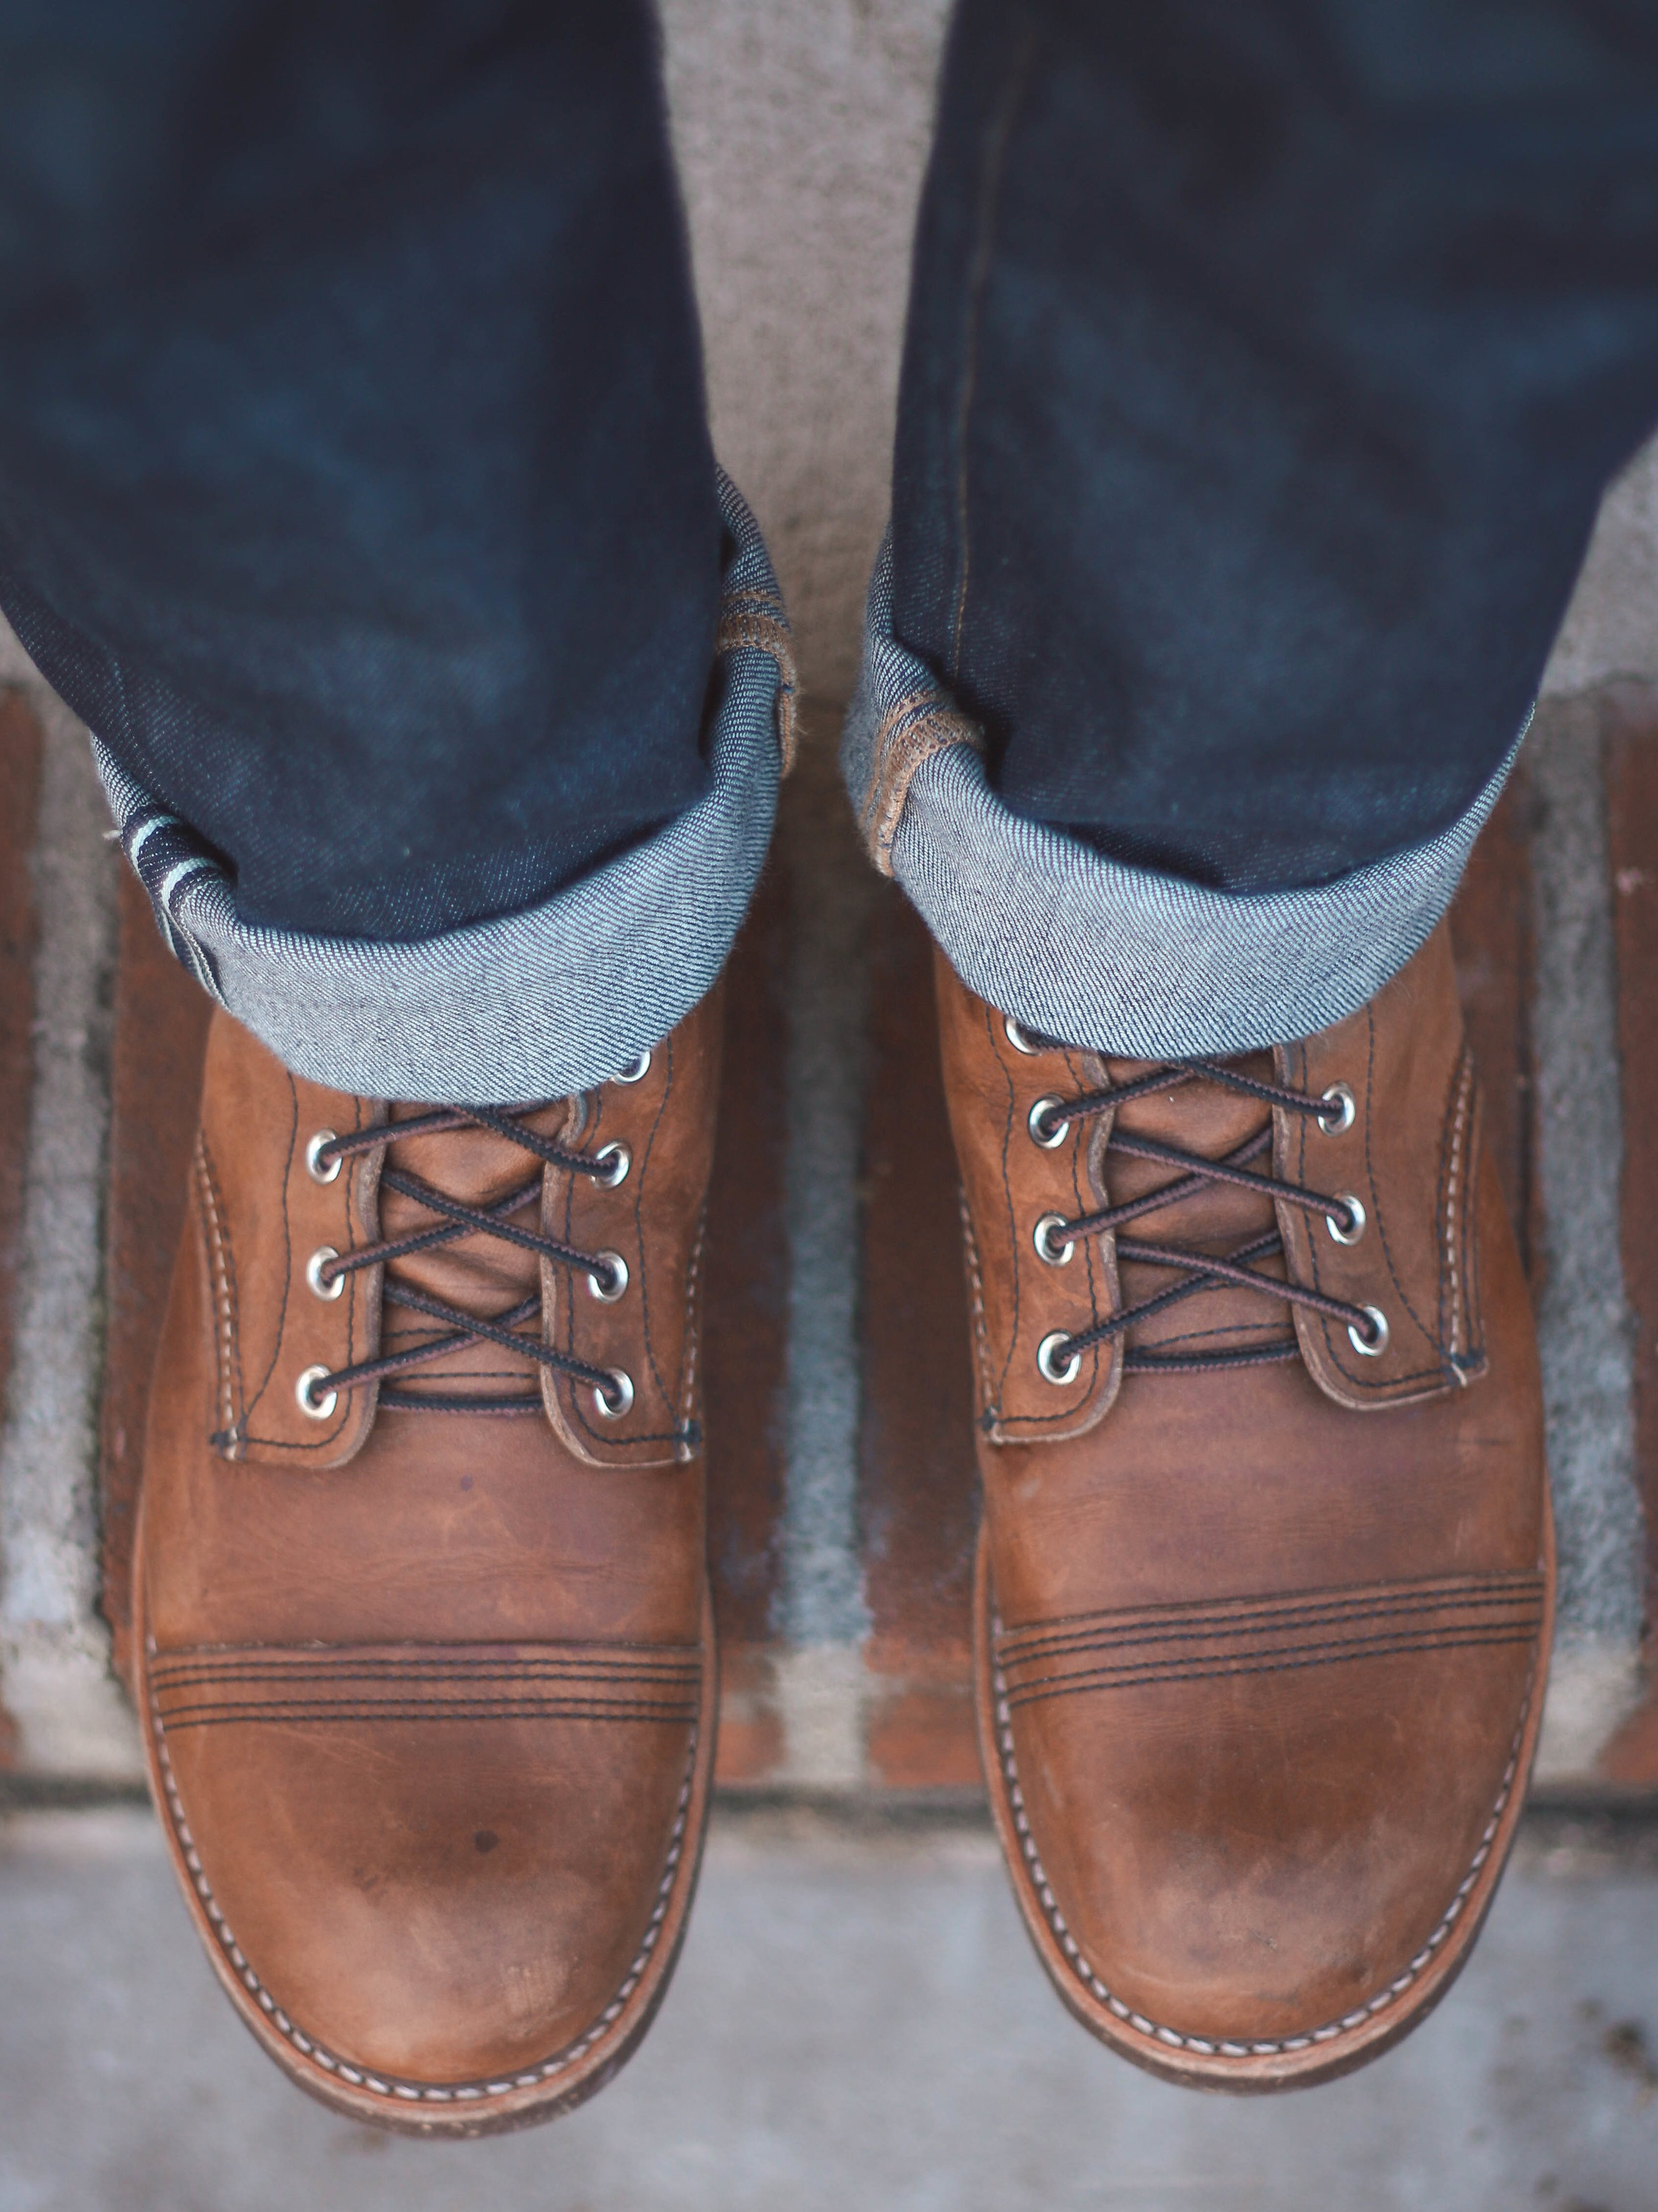 The eyelets remain roughly one inch apart when tied on these Red Wing Iron Rangers 8111.